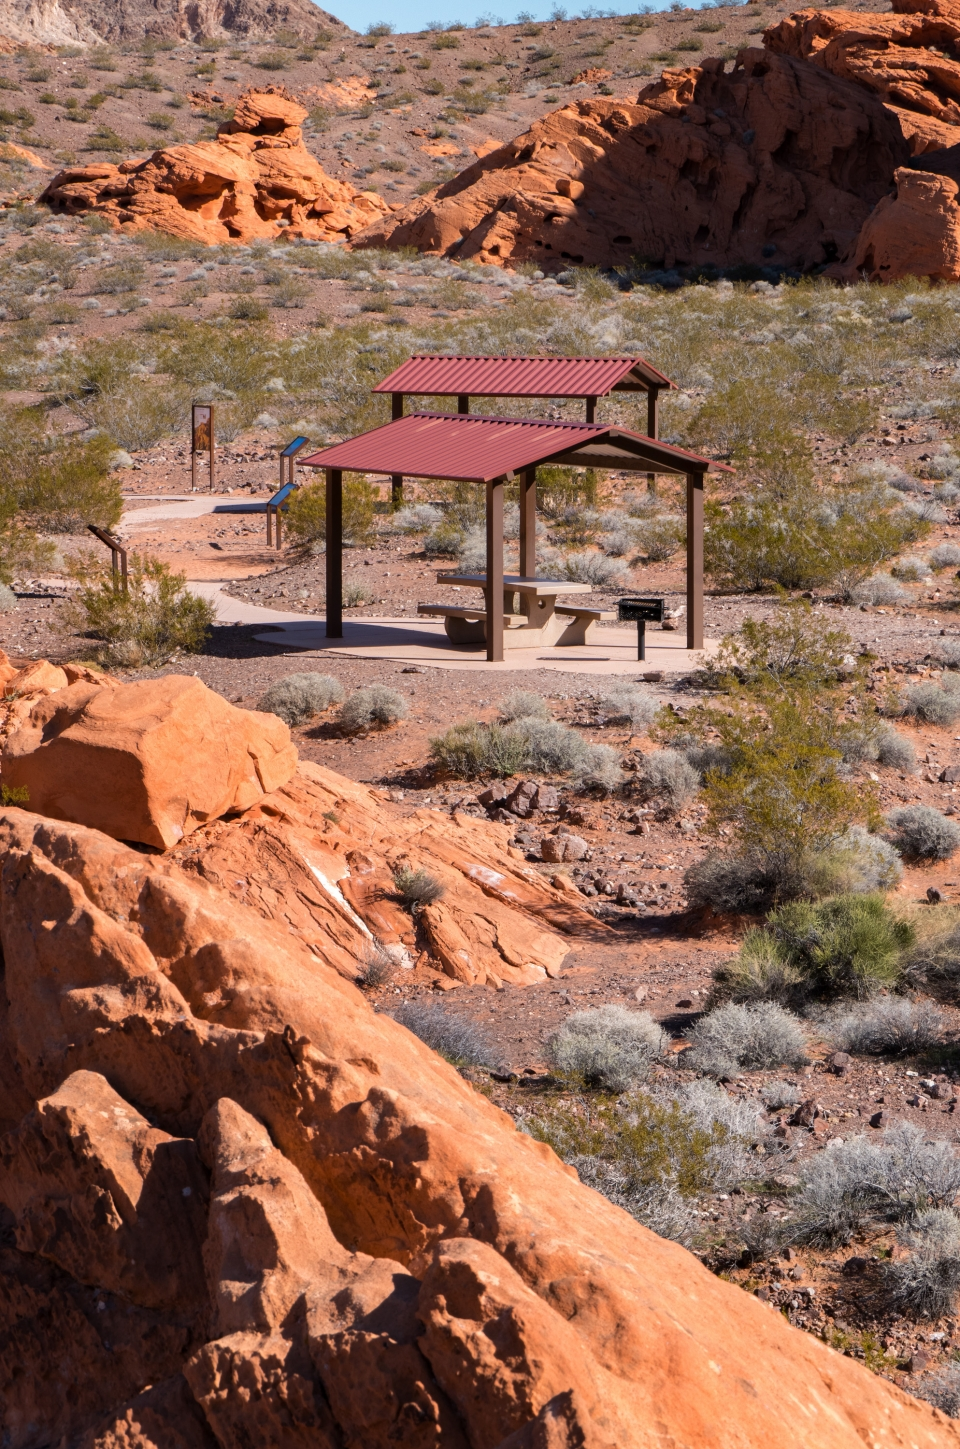 red picnic shelter amongst the red rock cliffs of Lake Mead National Recreation Area